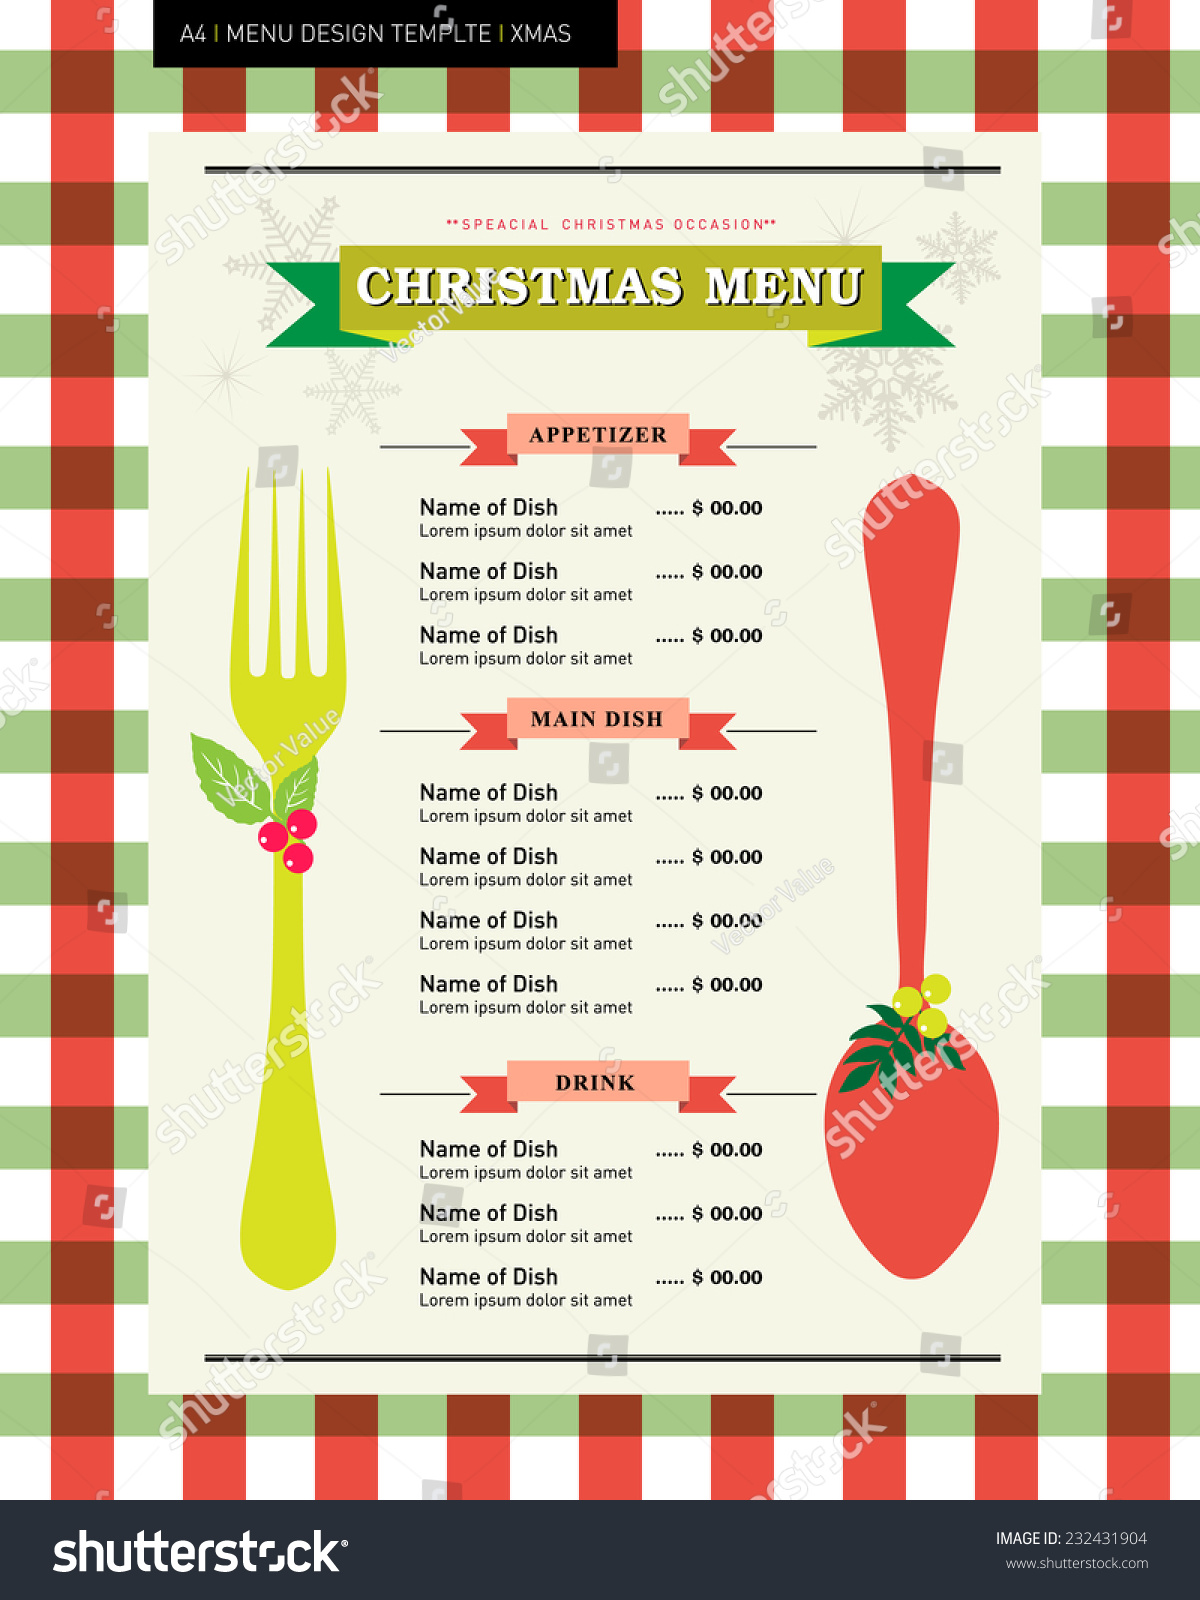 restaurant menu design template christmas party stock vector restaurant menu design template for christmas party homemade country style concept